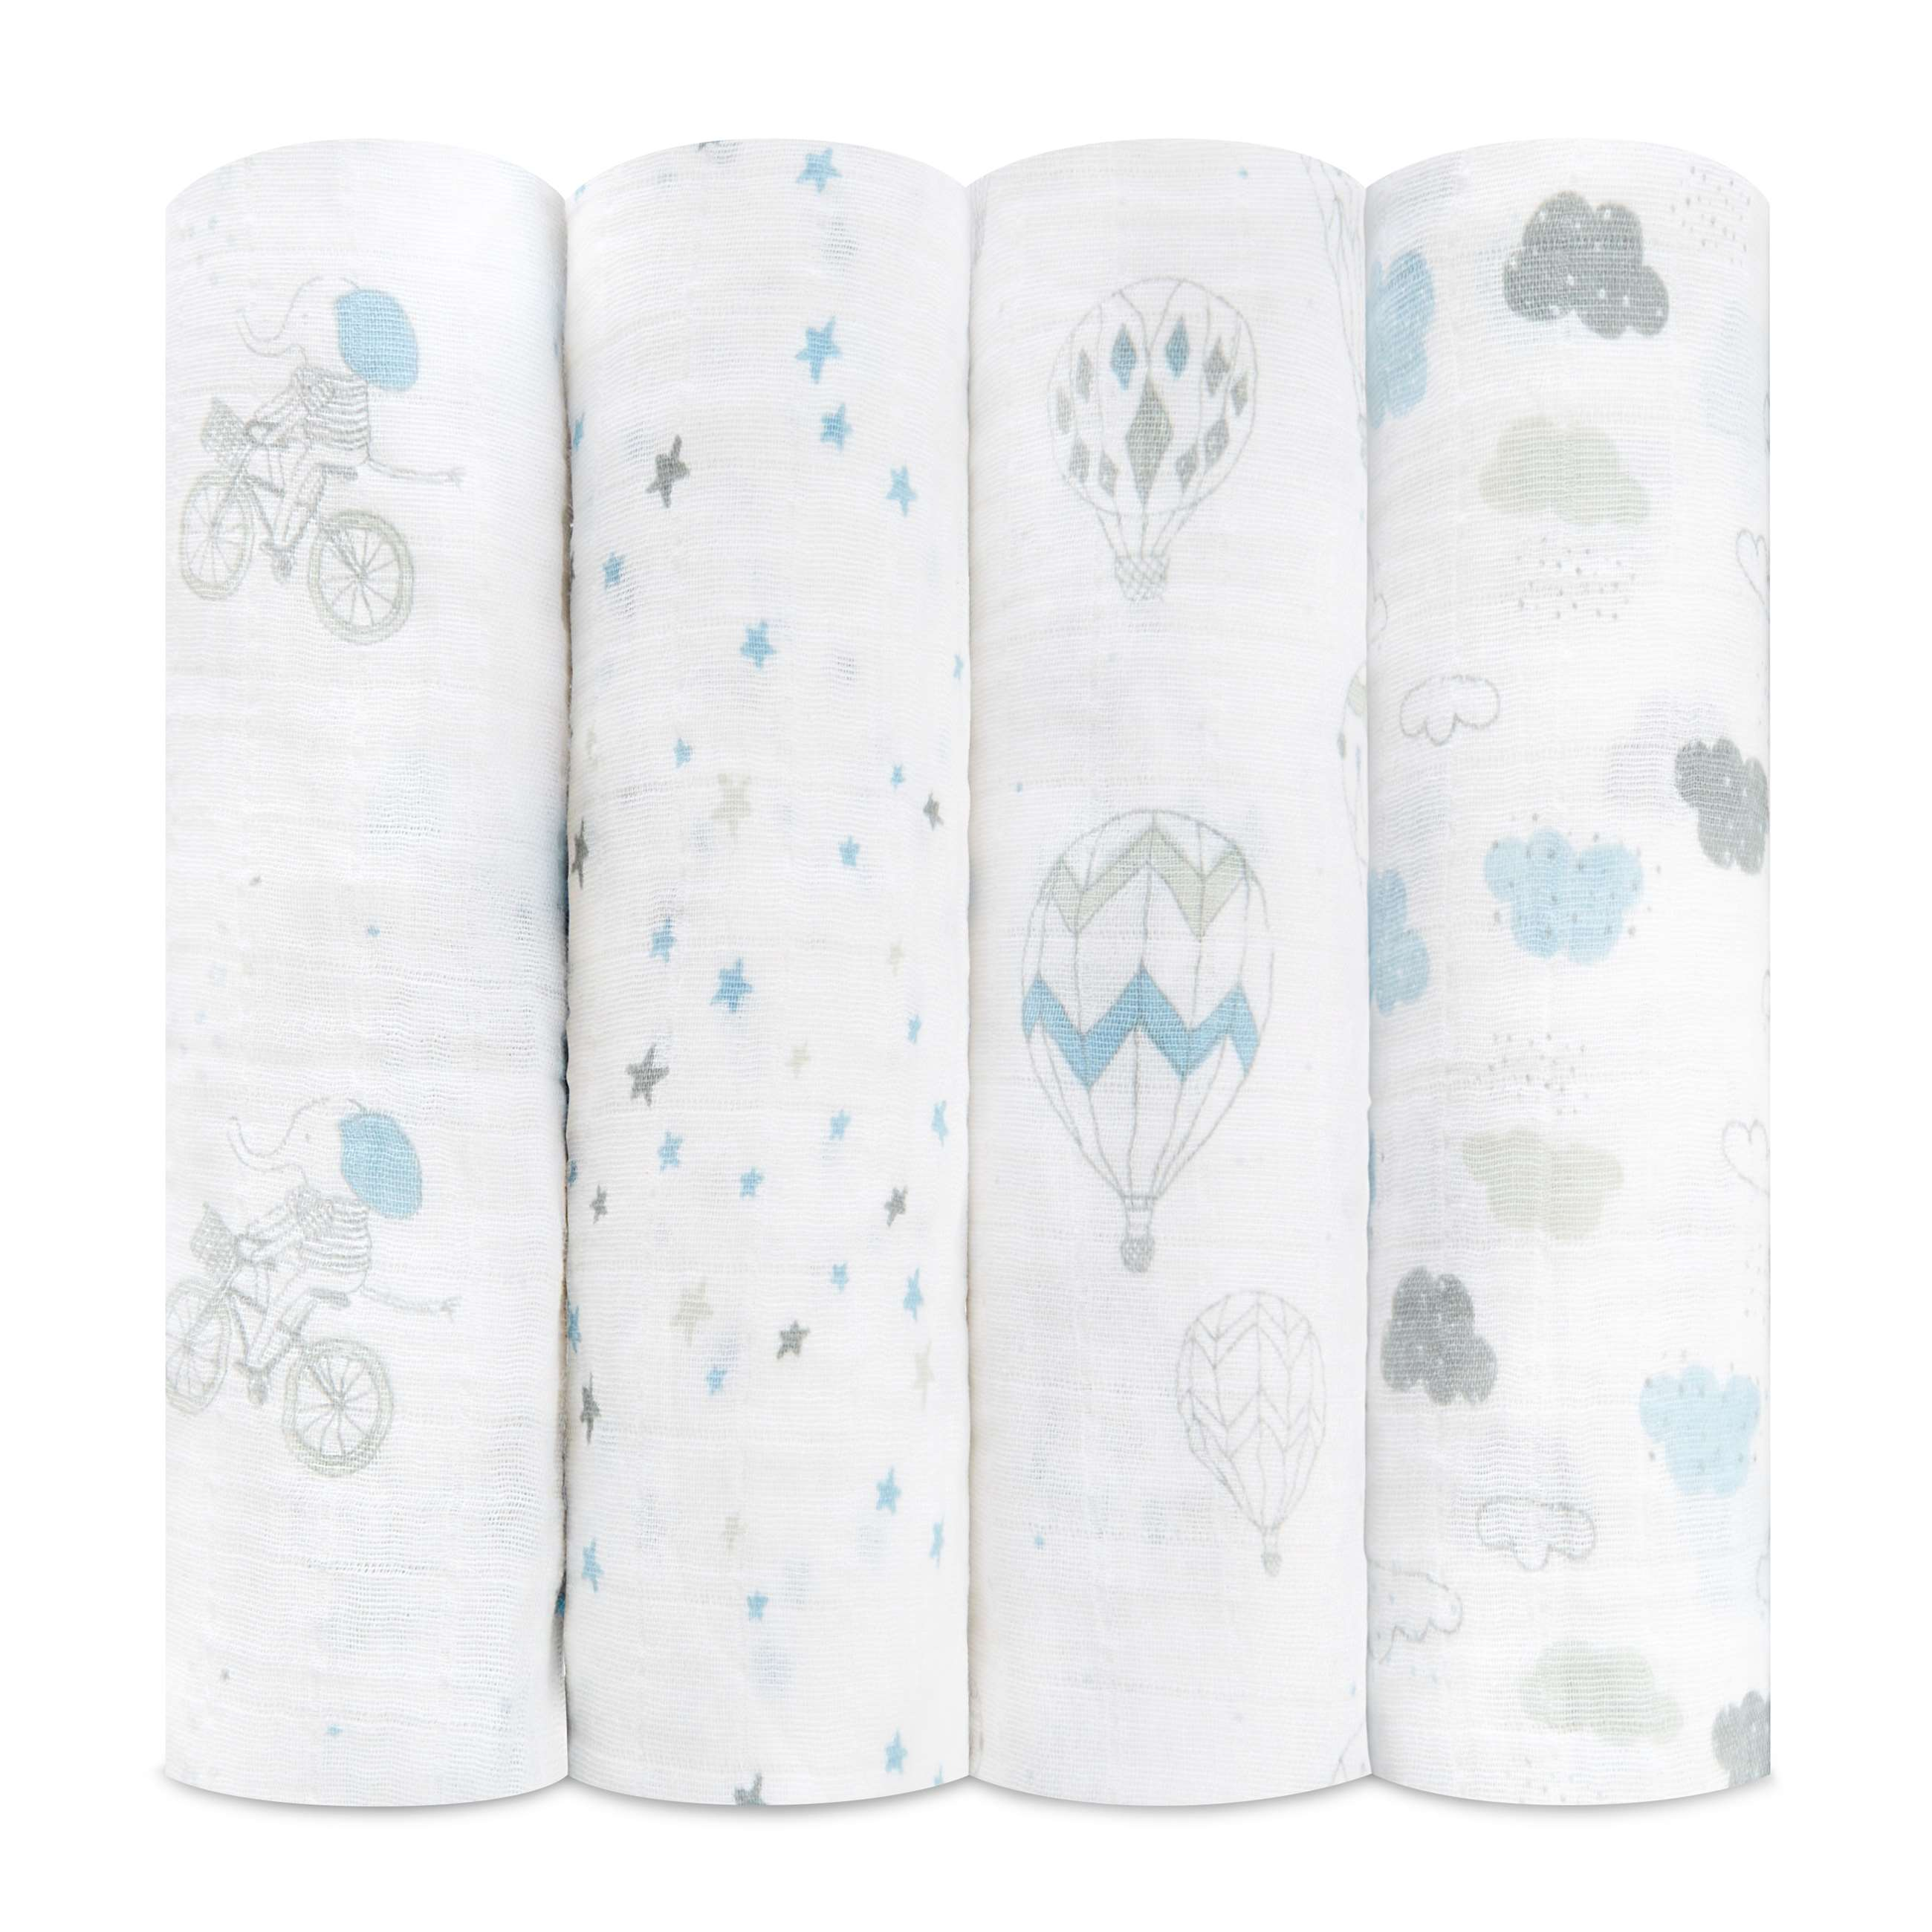 2066g_1-swaddles-muslin-night-sky-reverie-blue-list